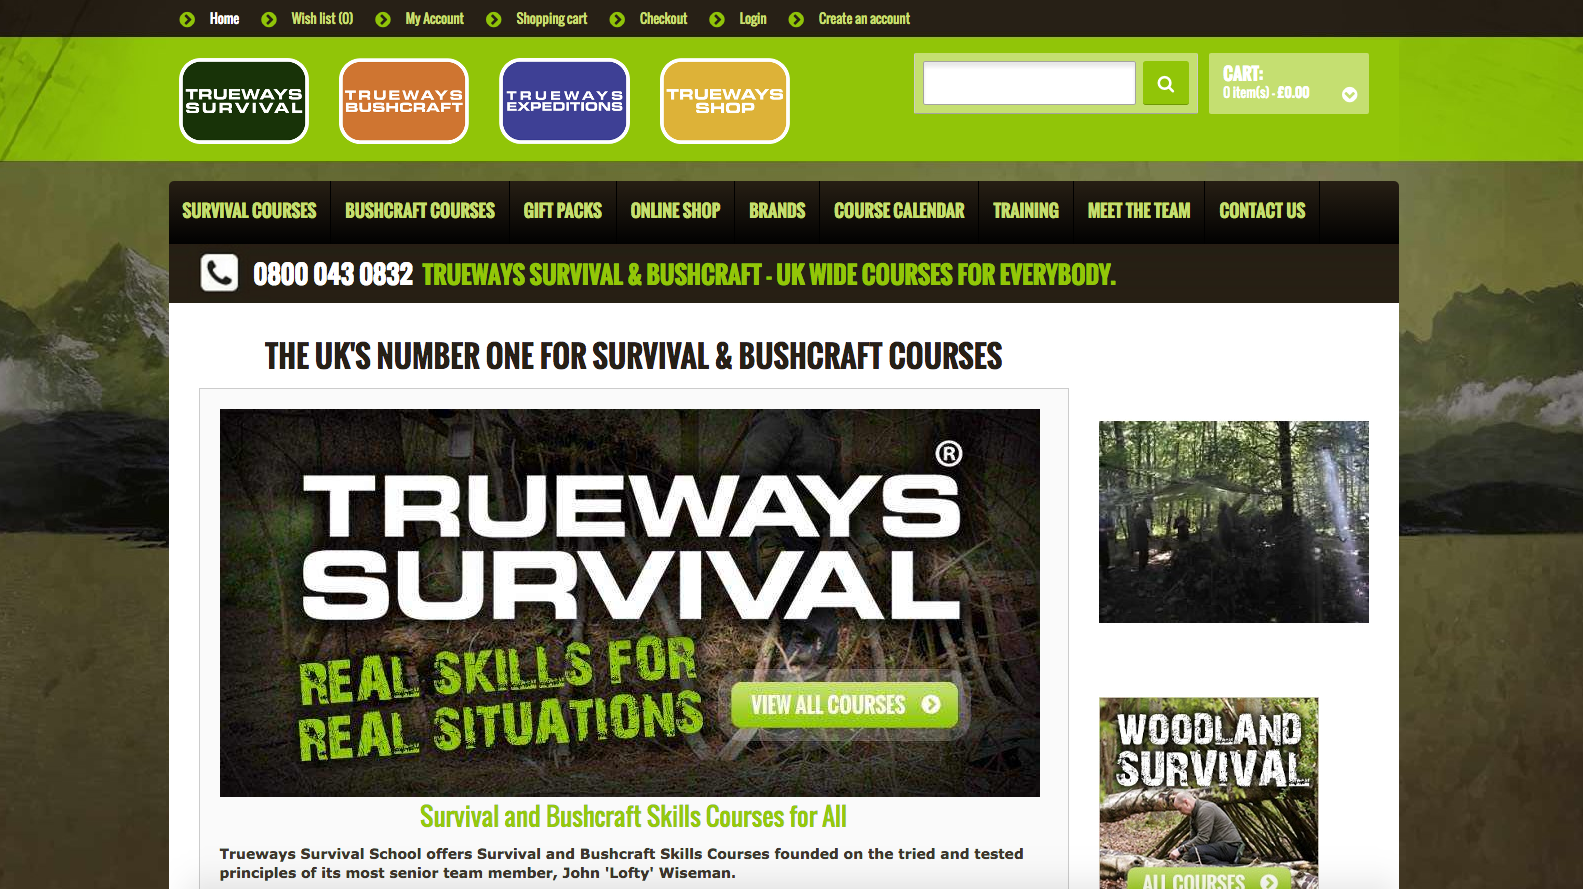 Trueways: UK's Largest Survival Course Provider